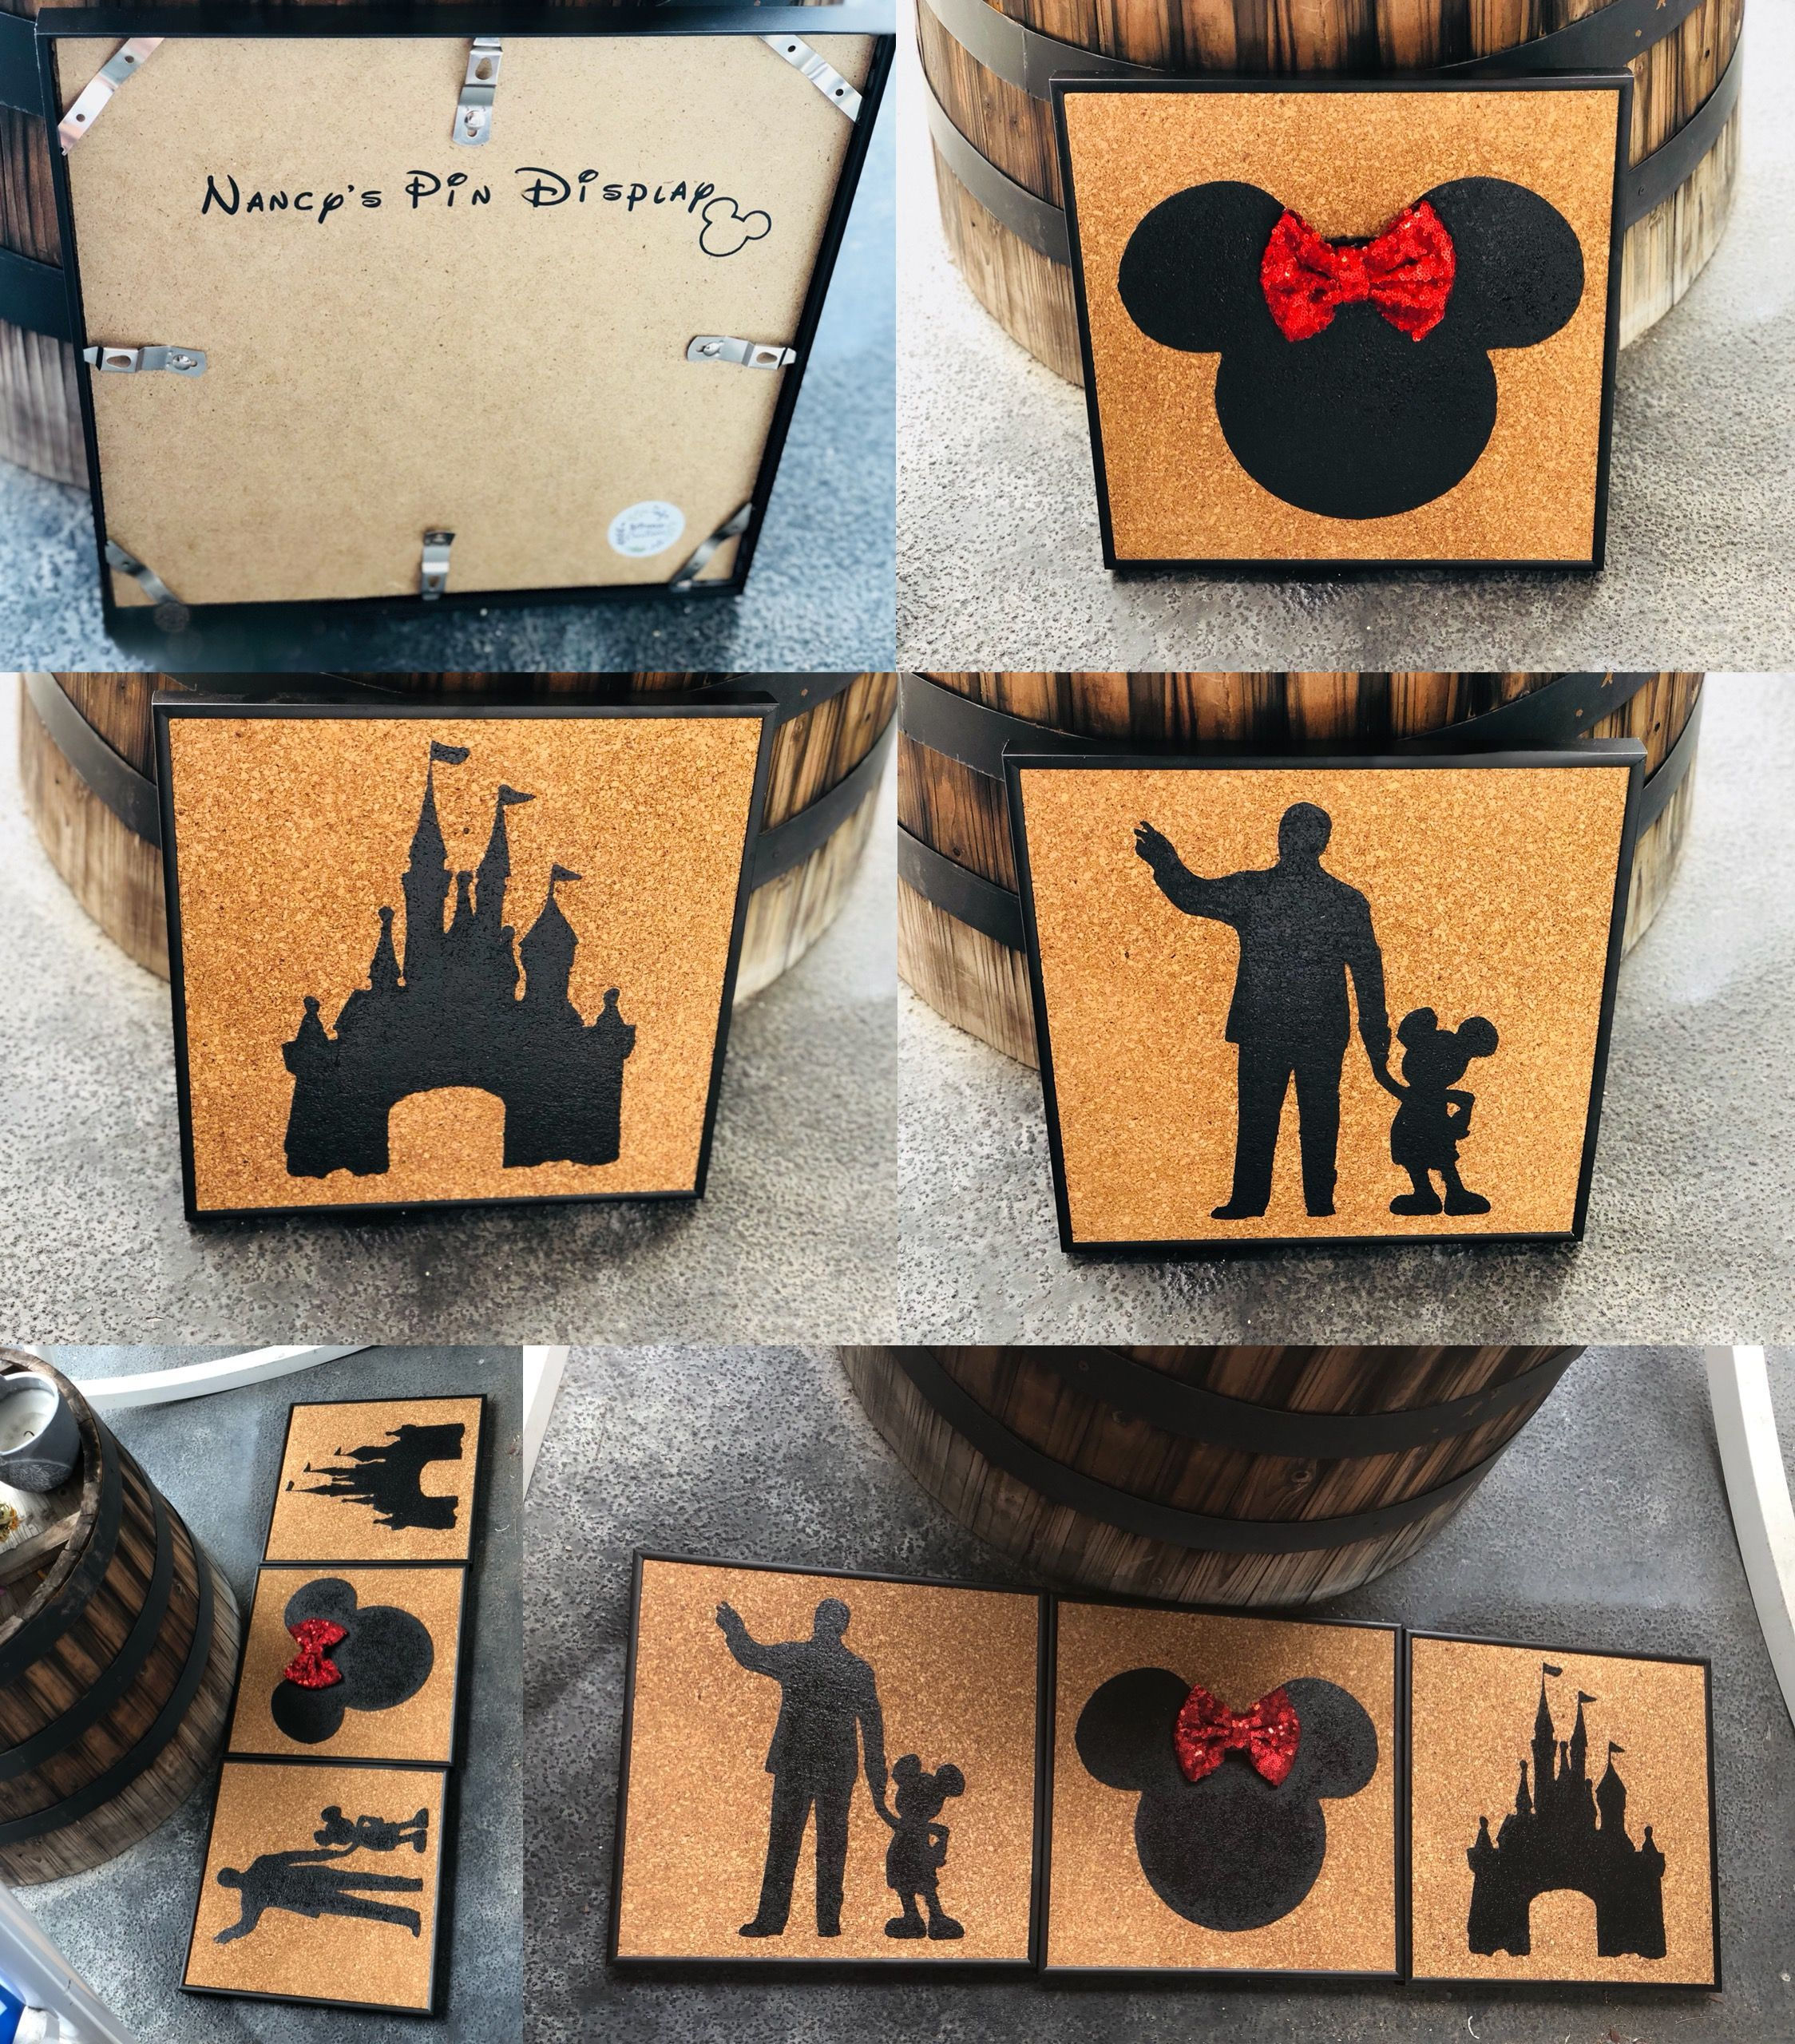 Disney pin display holders 12x12 bought the frames